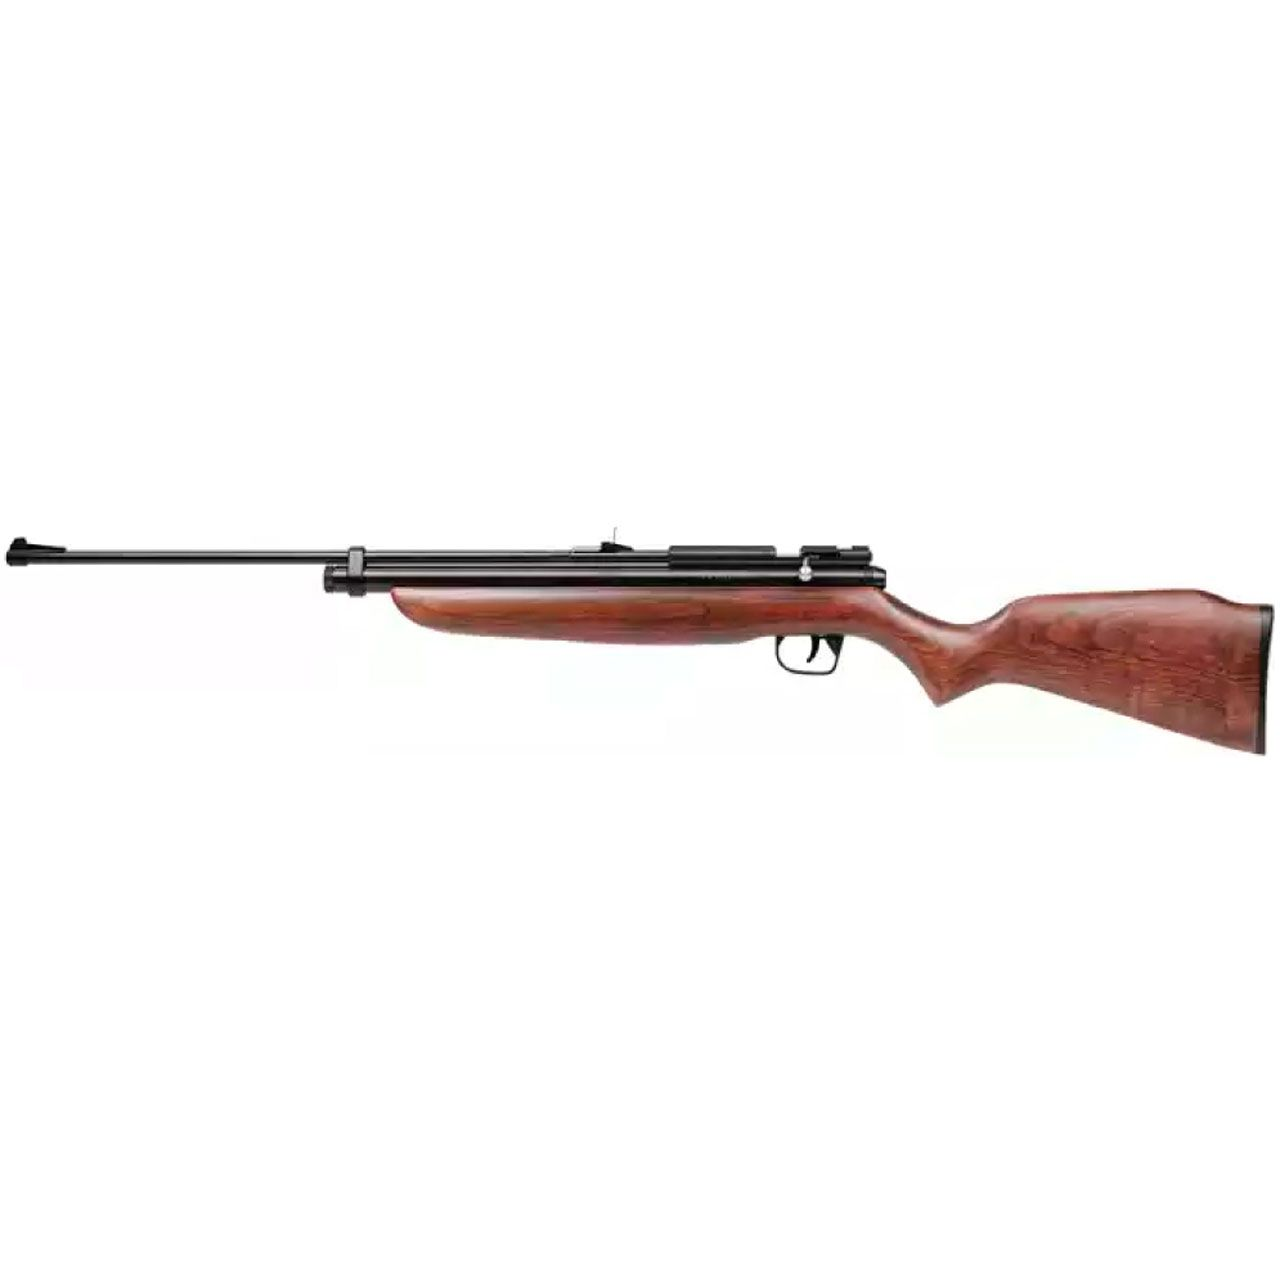 CARABINA CROSMAN SHERIDAN 2260MB CO2 CALIBRE 5,5MM